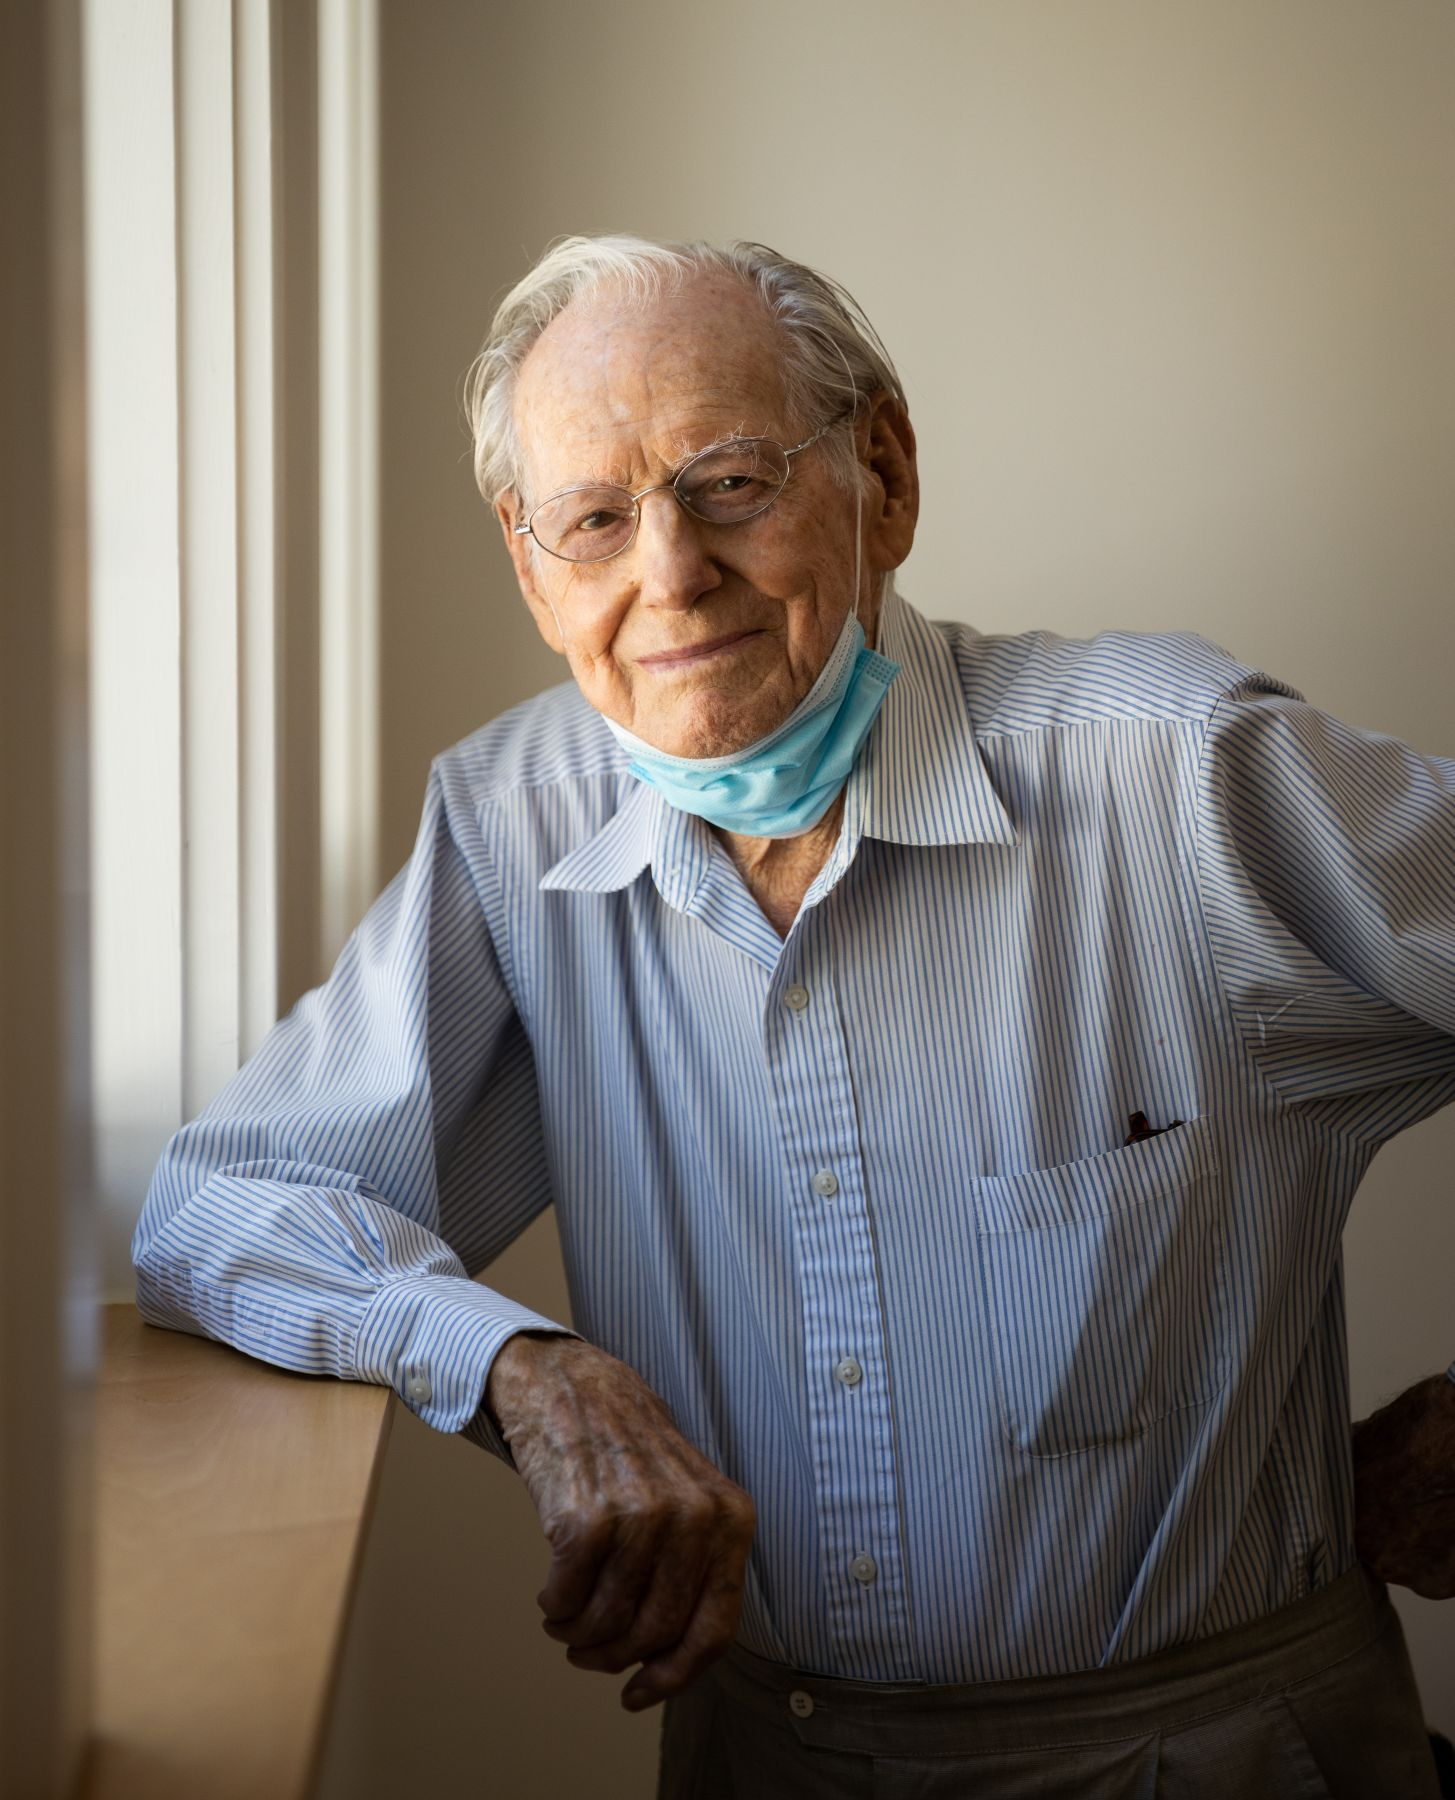 Photo of Wayne Thiebaud by Max Whittaker, 2020